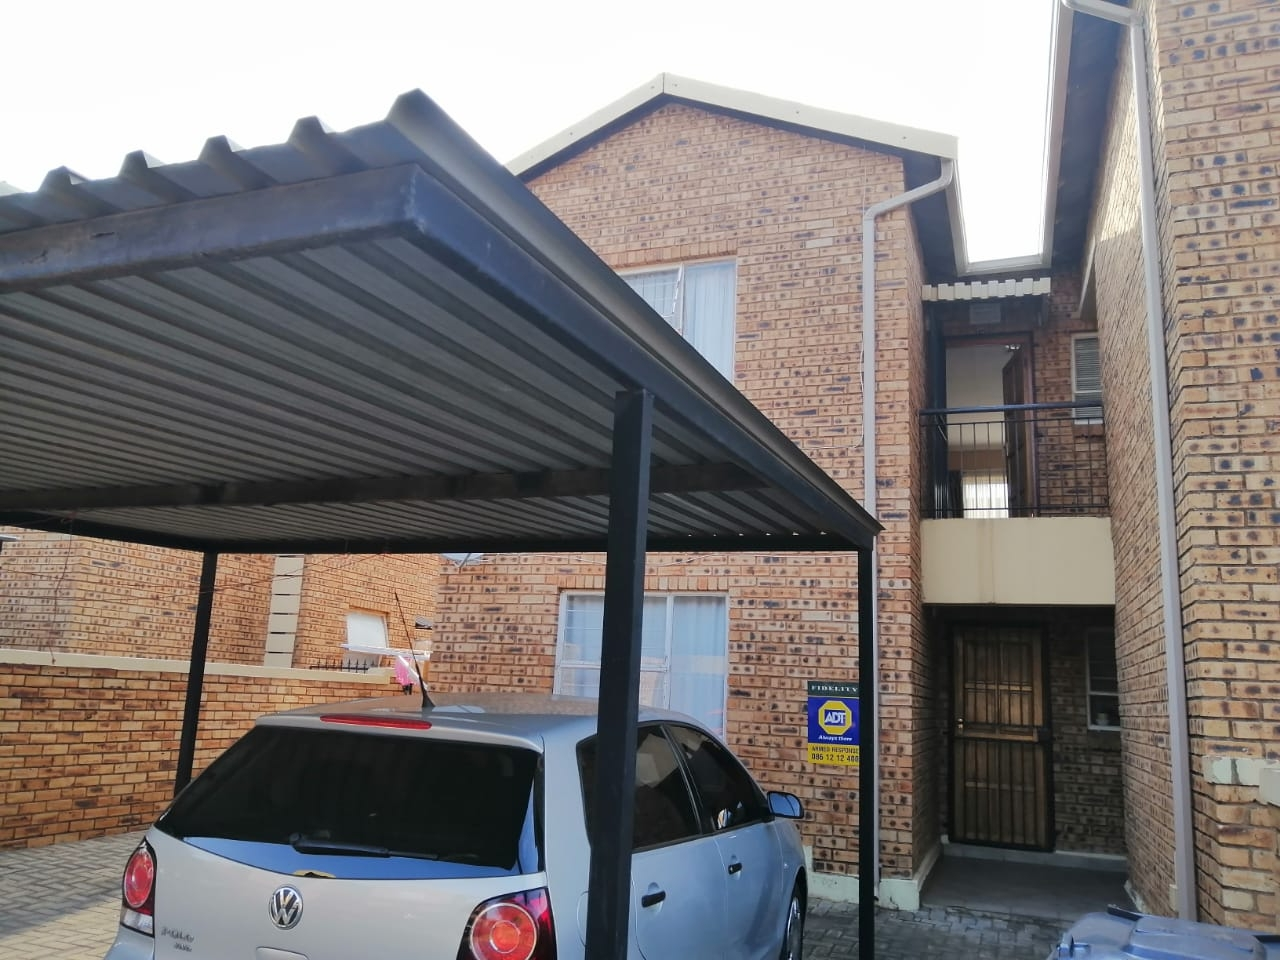 Carport and view of unit on top floor